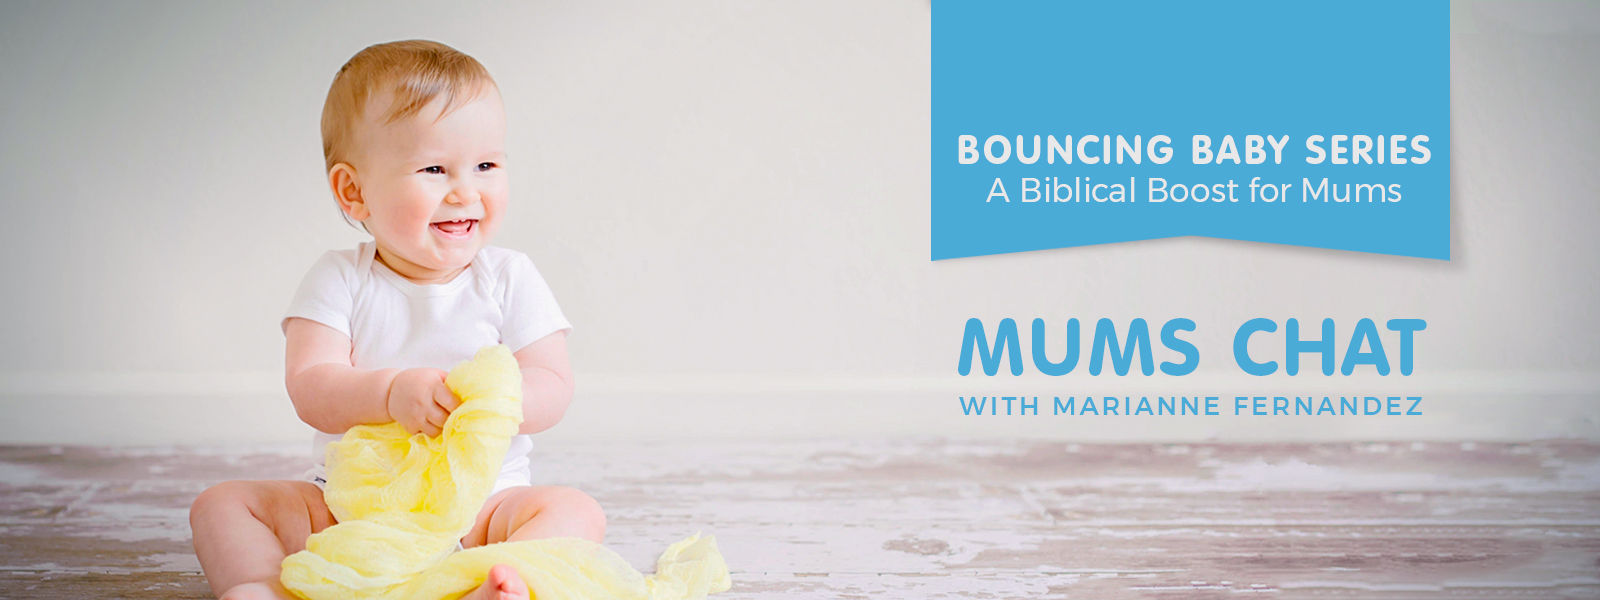 Mums Chat –Bouncing Baby